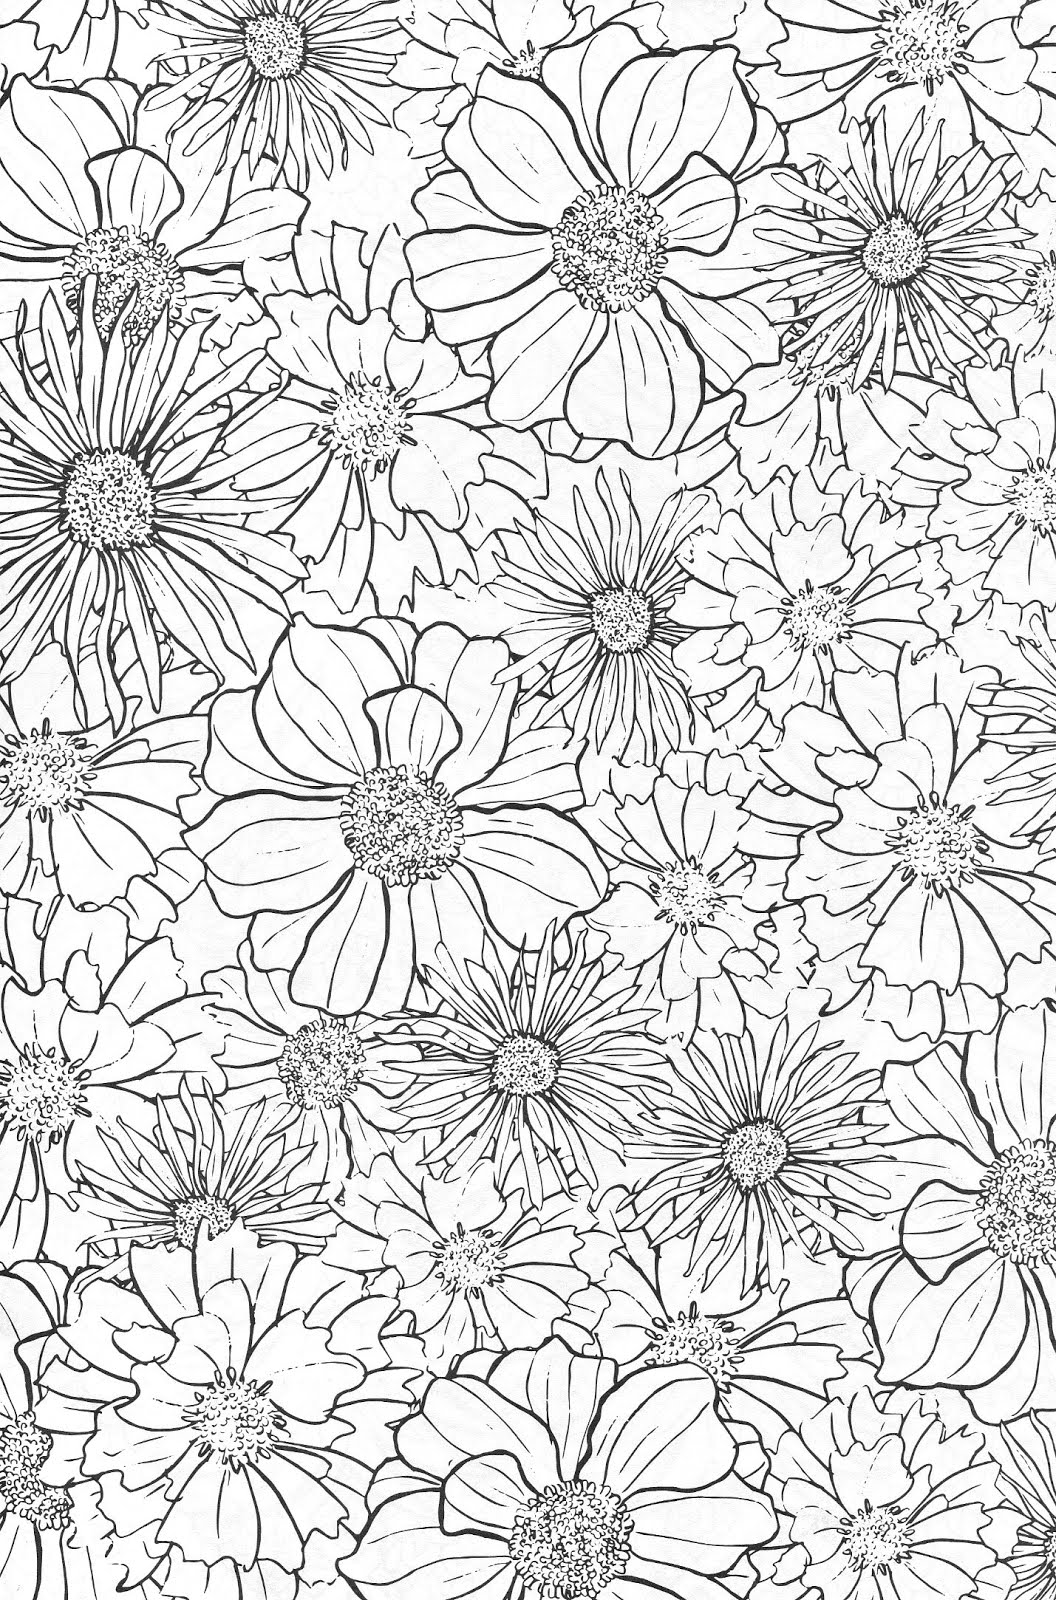 Mark montano adult coloring book ikea hack, love coloring book pages